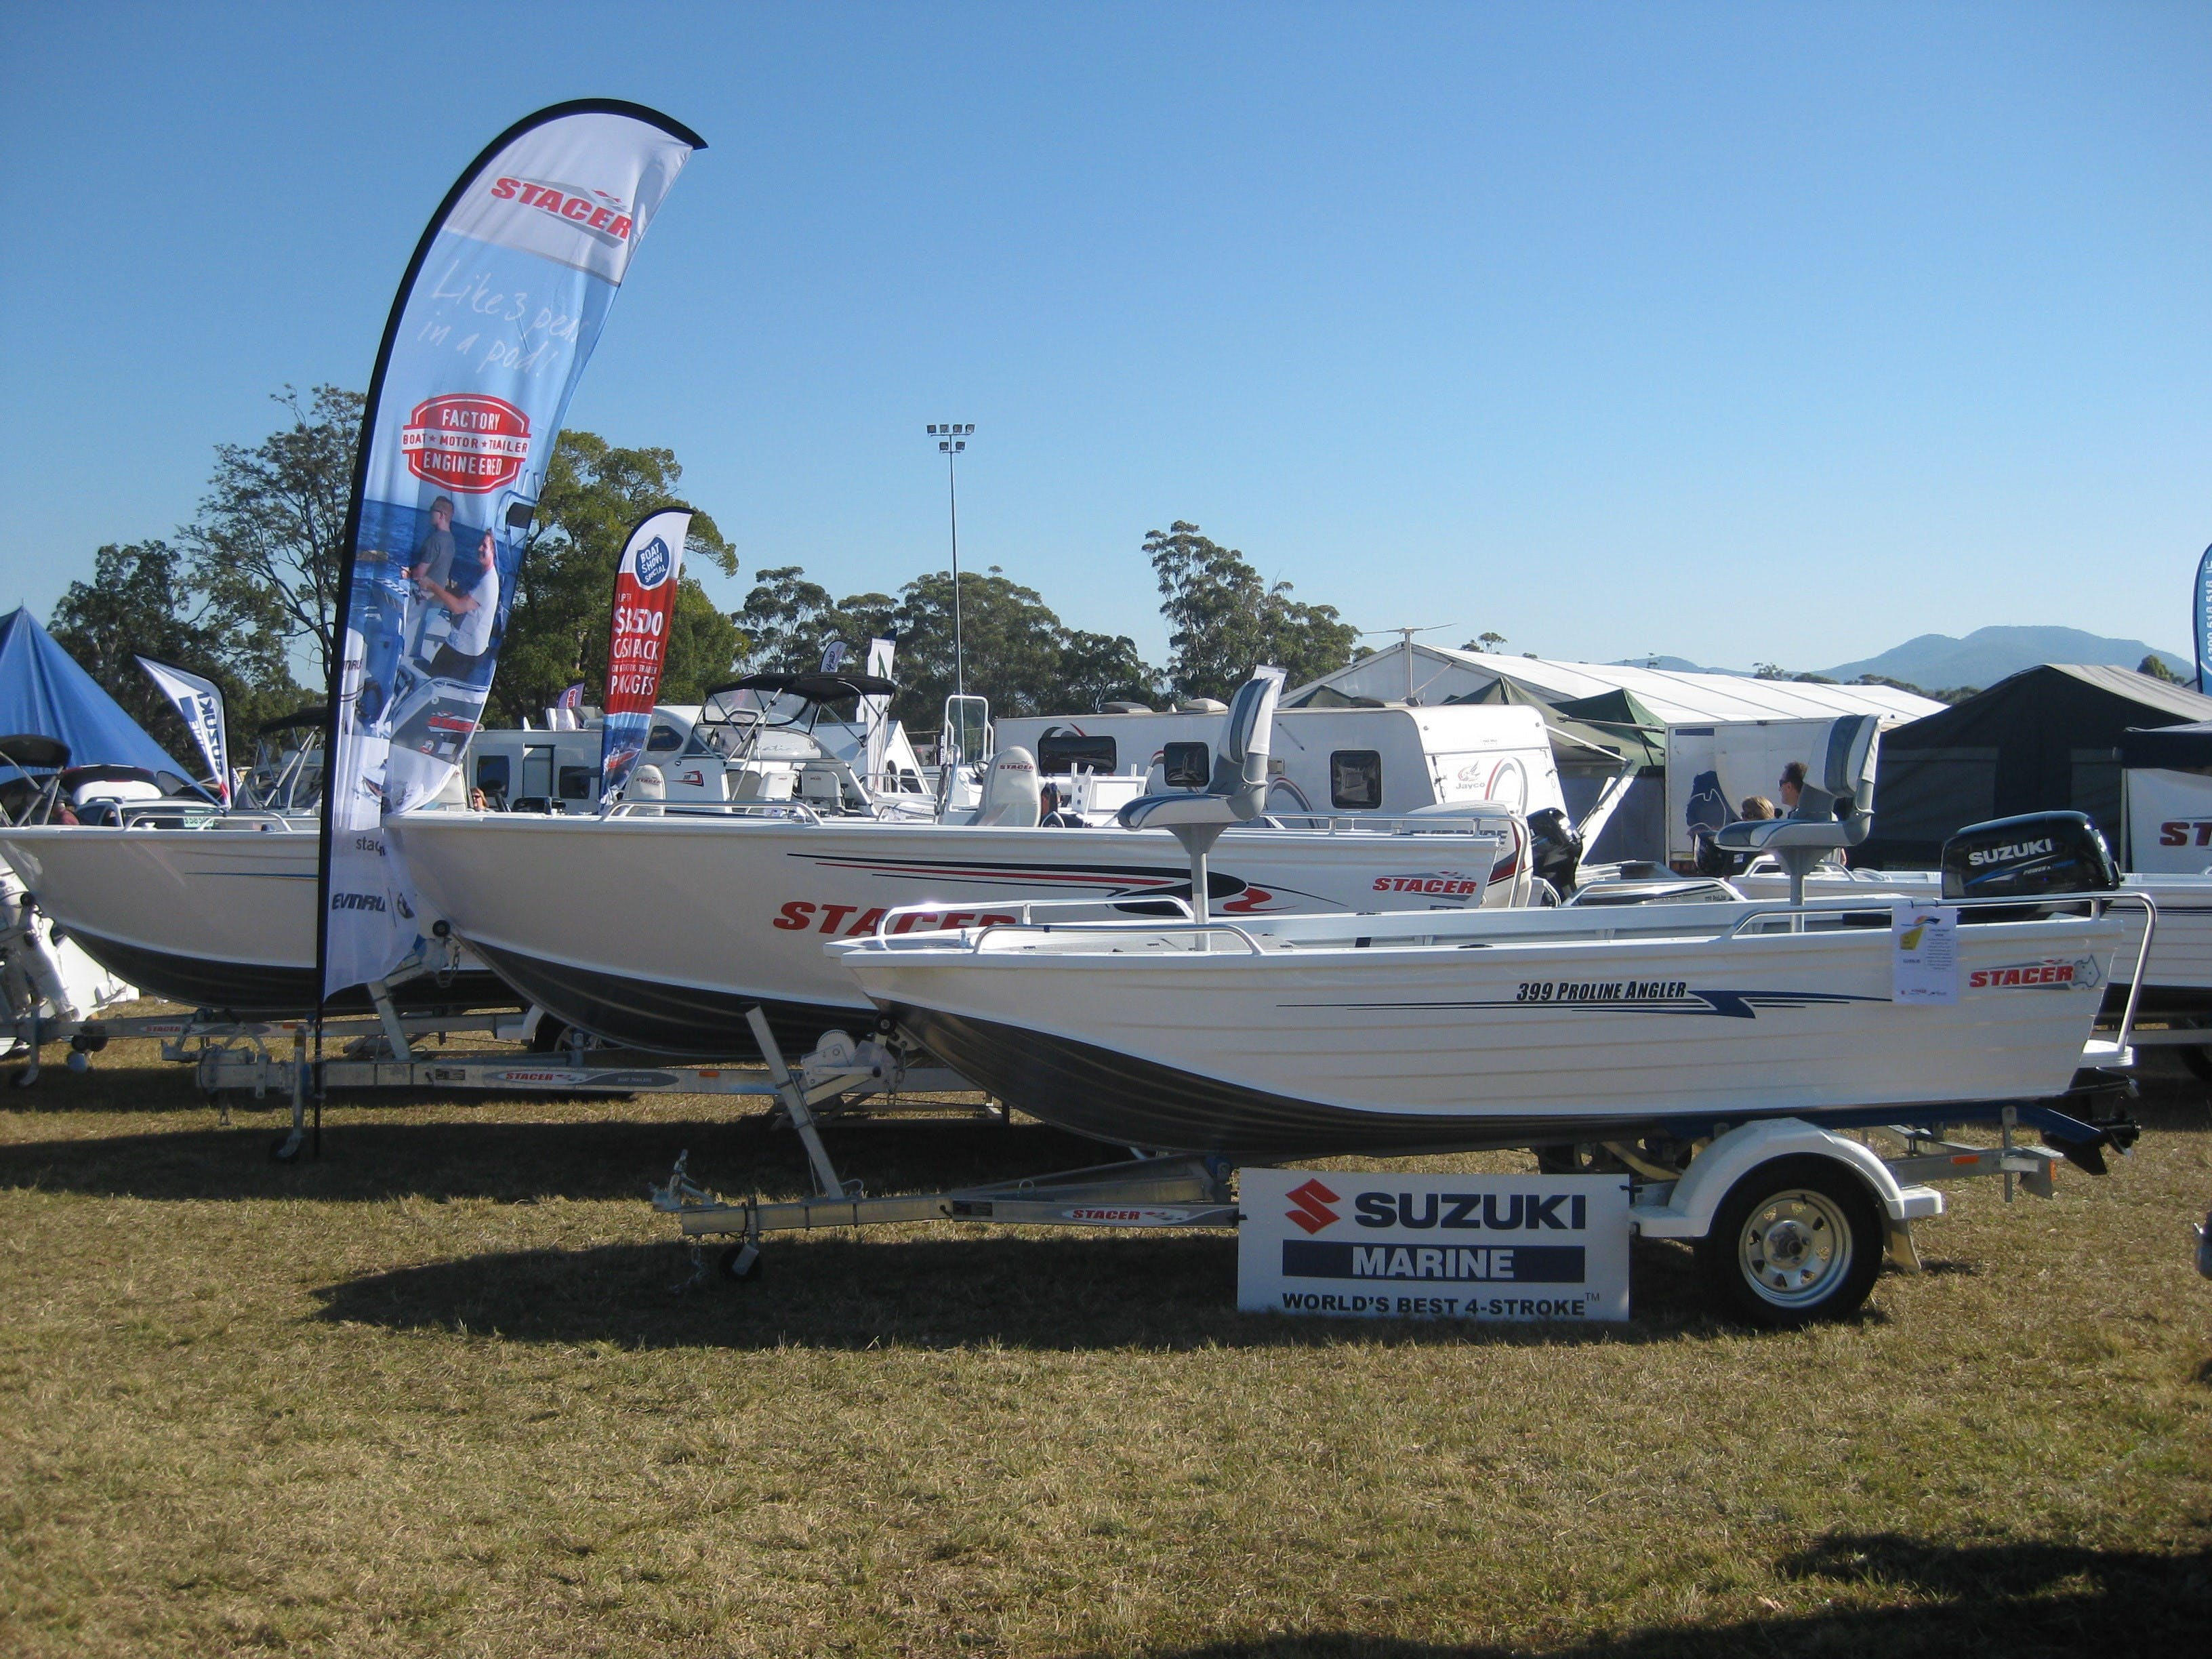 Mid North Coast Caravan Camping 4WD Fish and Boat Show - Accommodation in Surfers Paradise